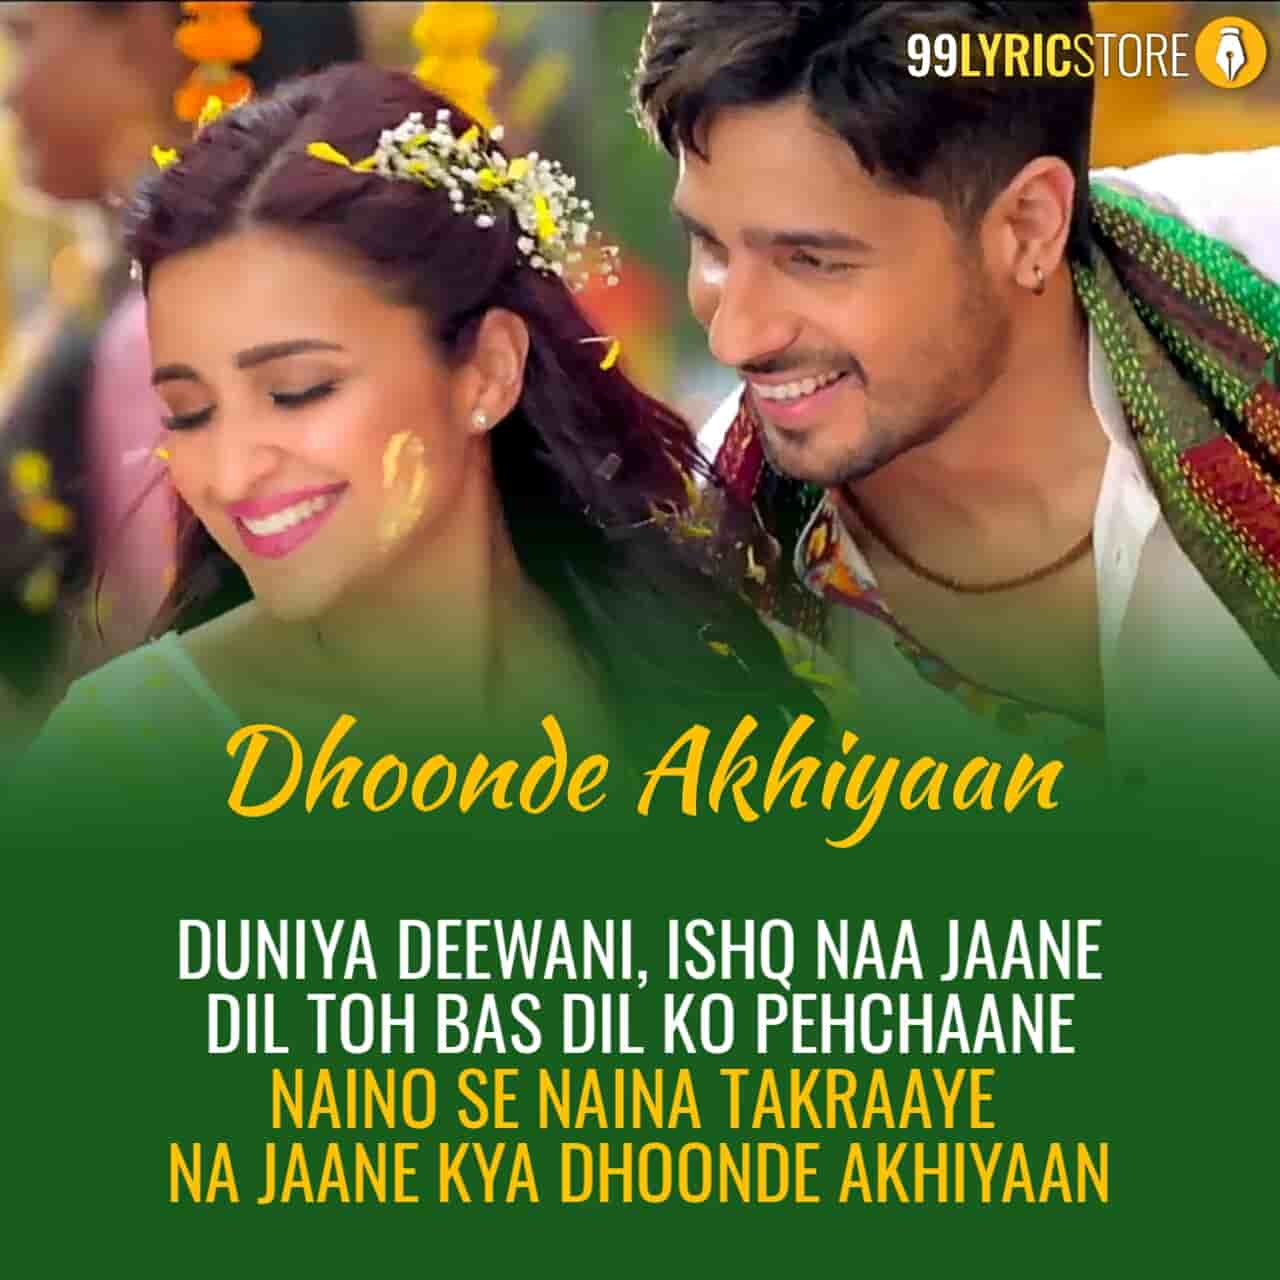 Dhoonde Akhiyaan Hindi song sung by Yasser Desai